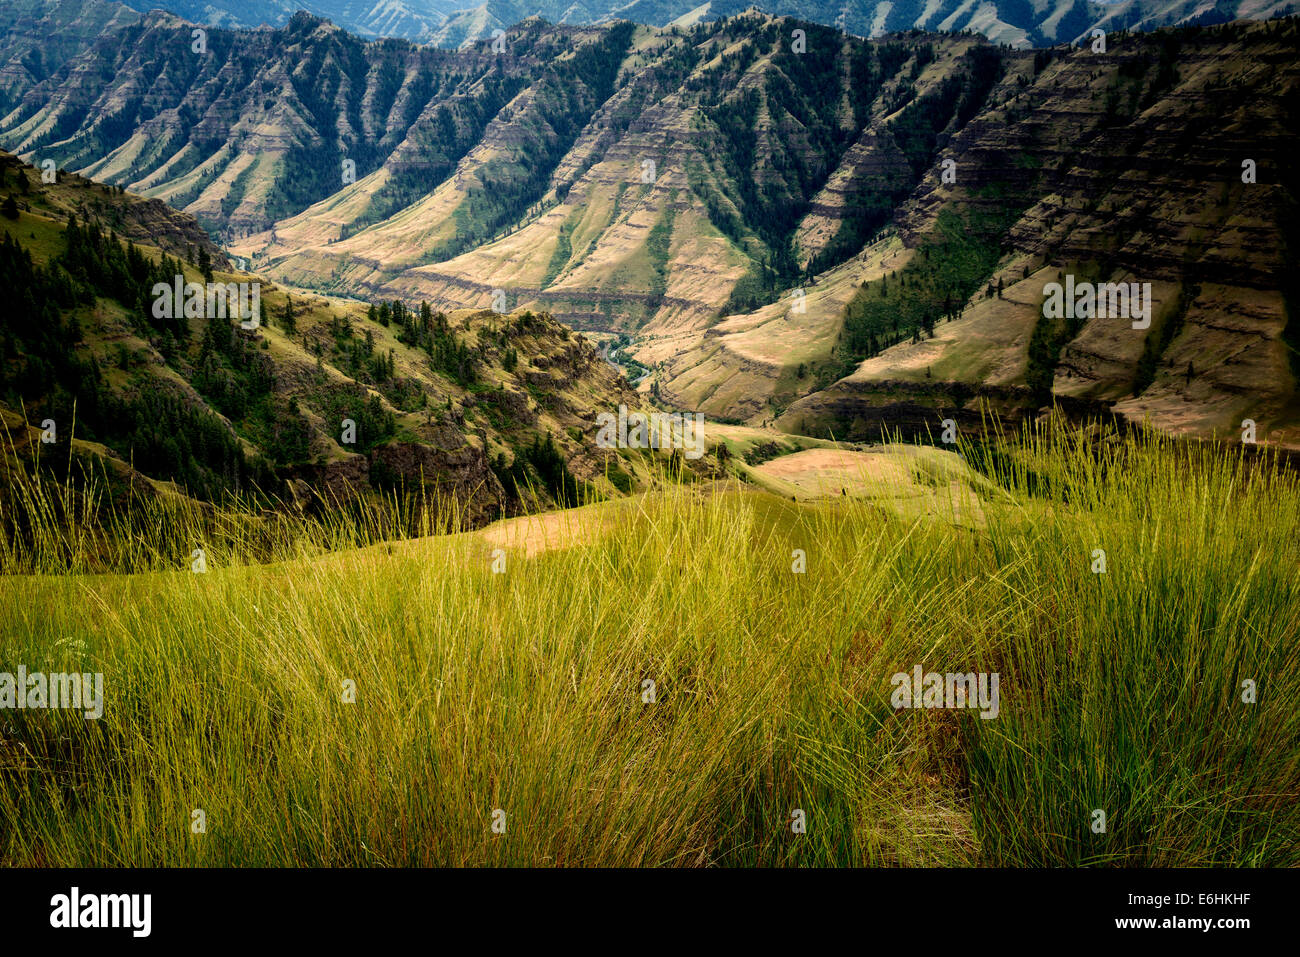 Herbes et Imnaha Canyon. Hells Canyon National Recreation Area, New York Photo Stock